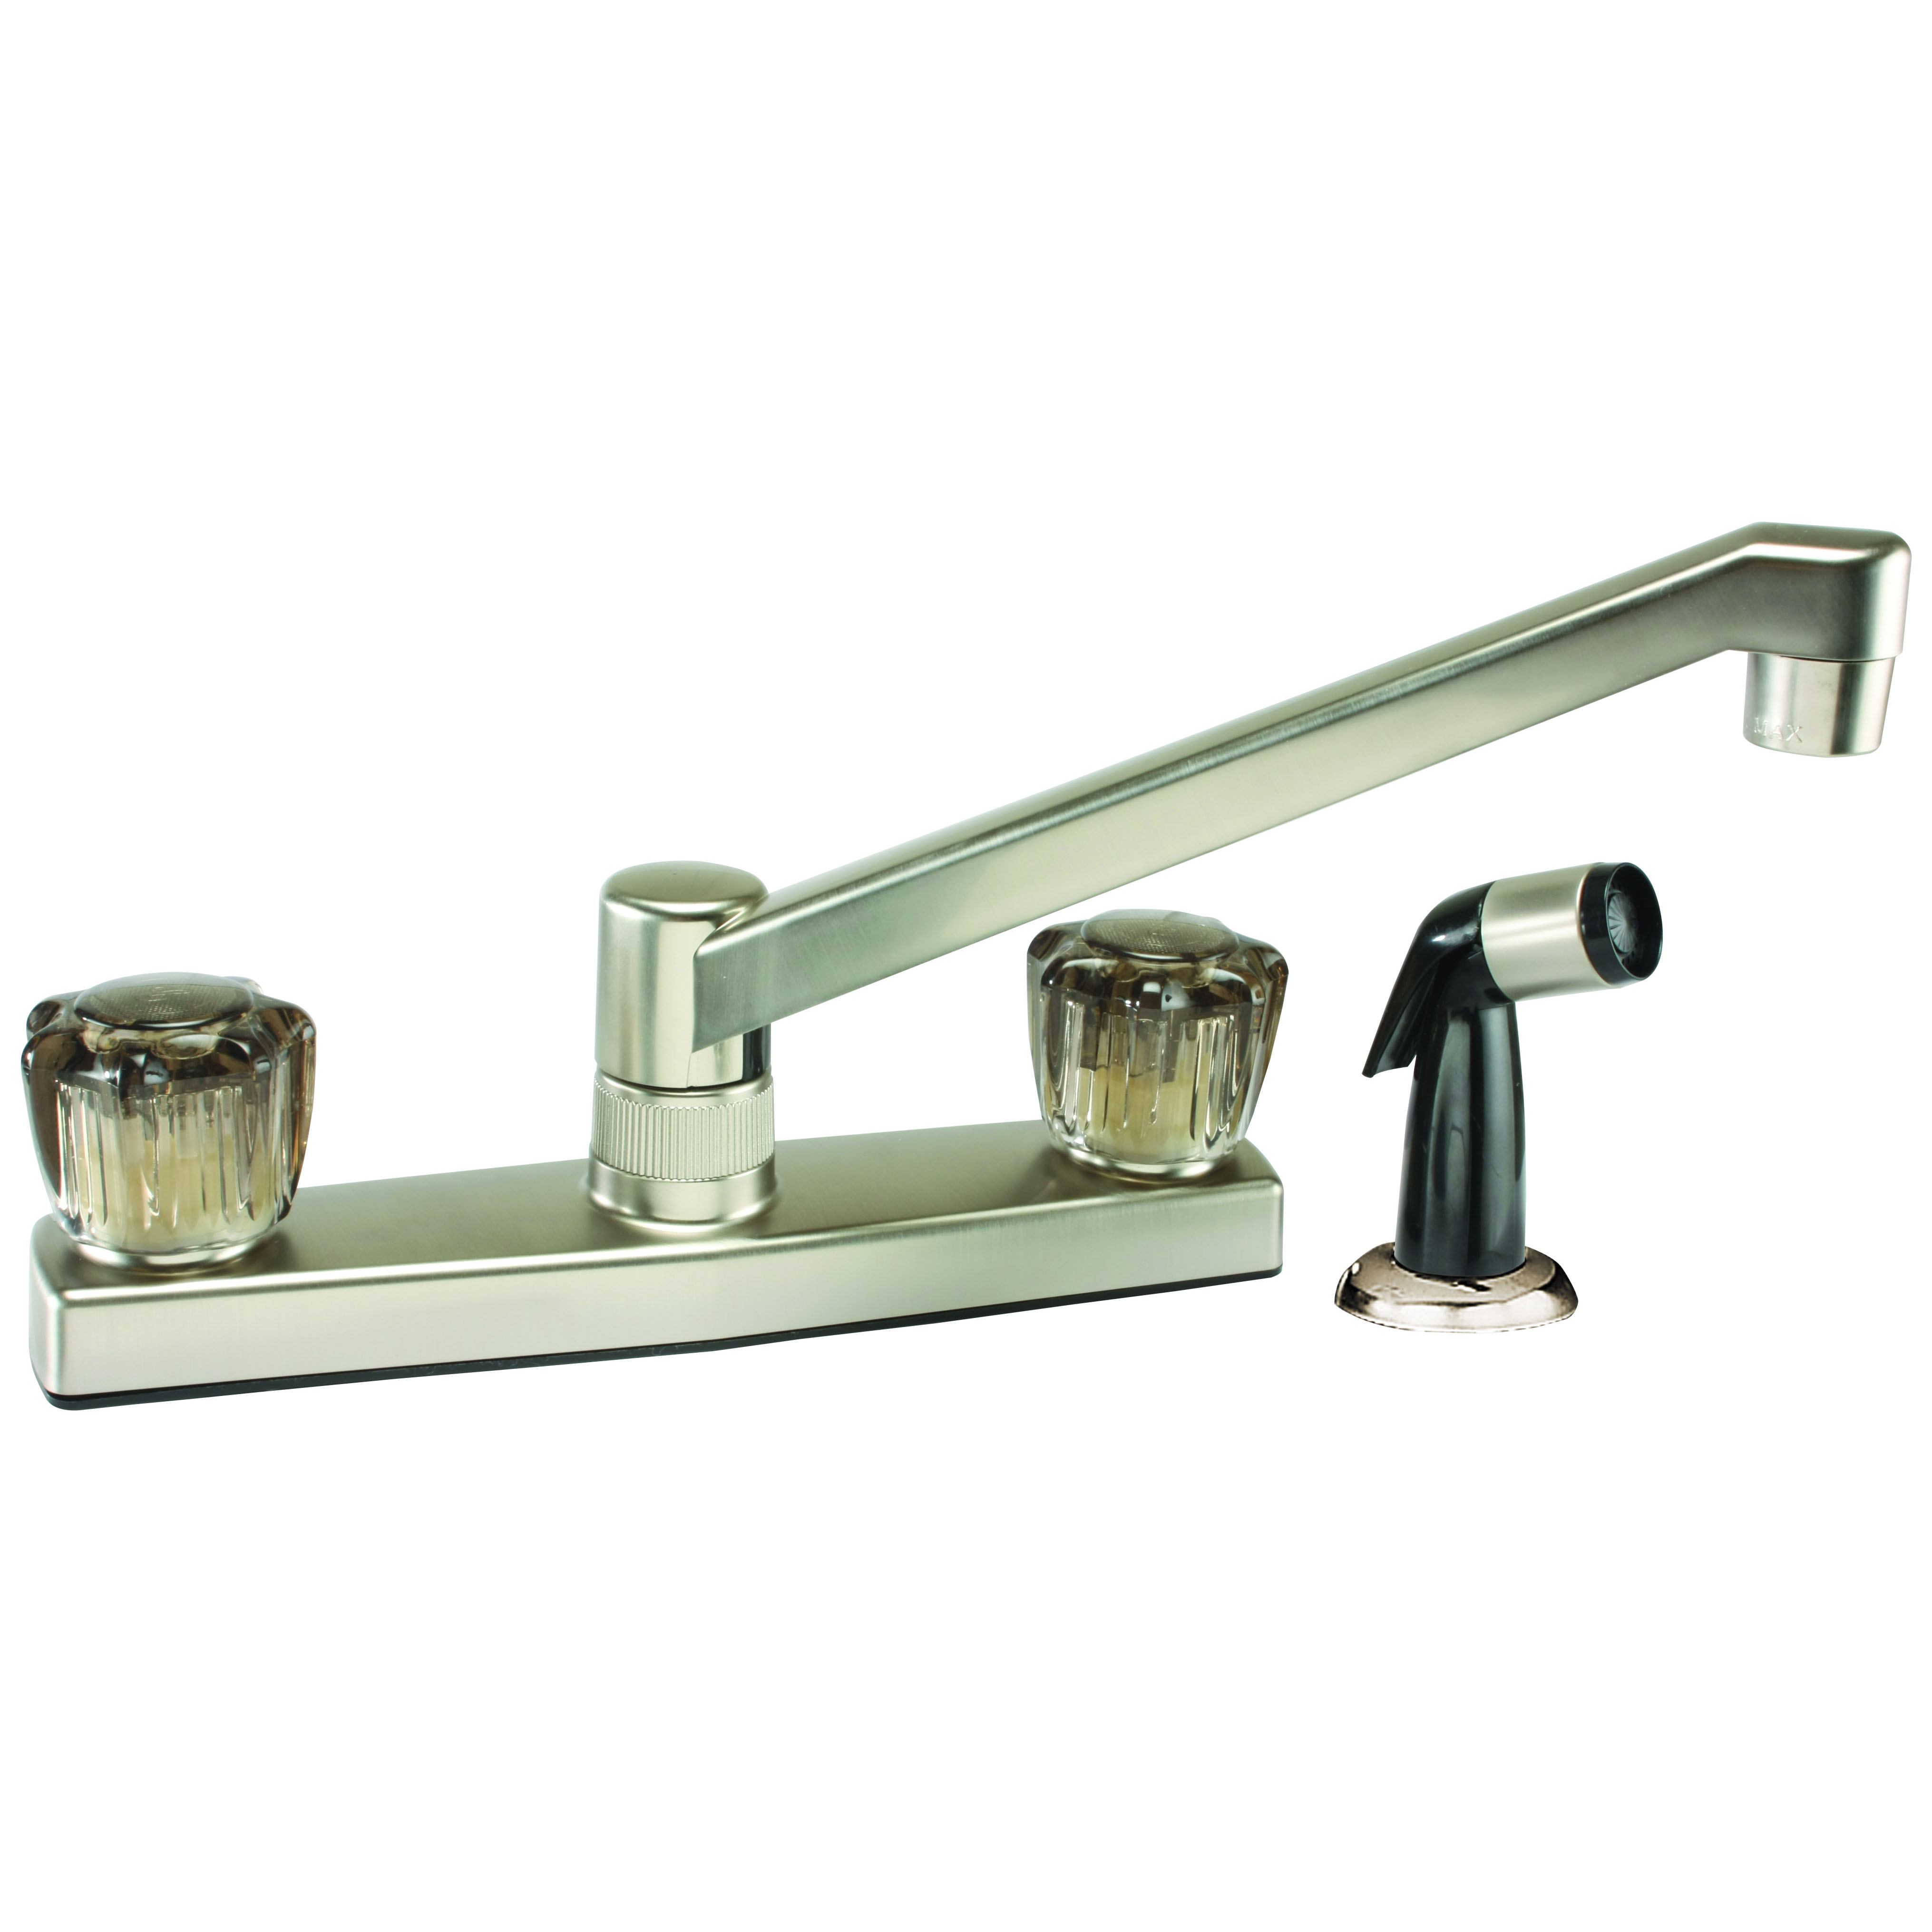 Picture of Boston Harbor JY8201SBN Kitchen Faucet, 1.8 gpm, 2-Faucet Handle, Brushed Nickel